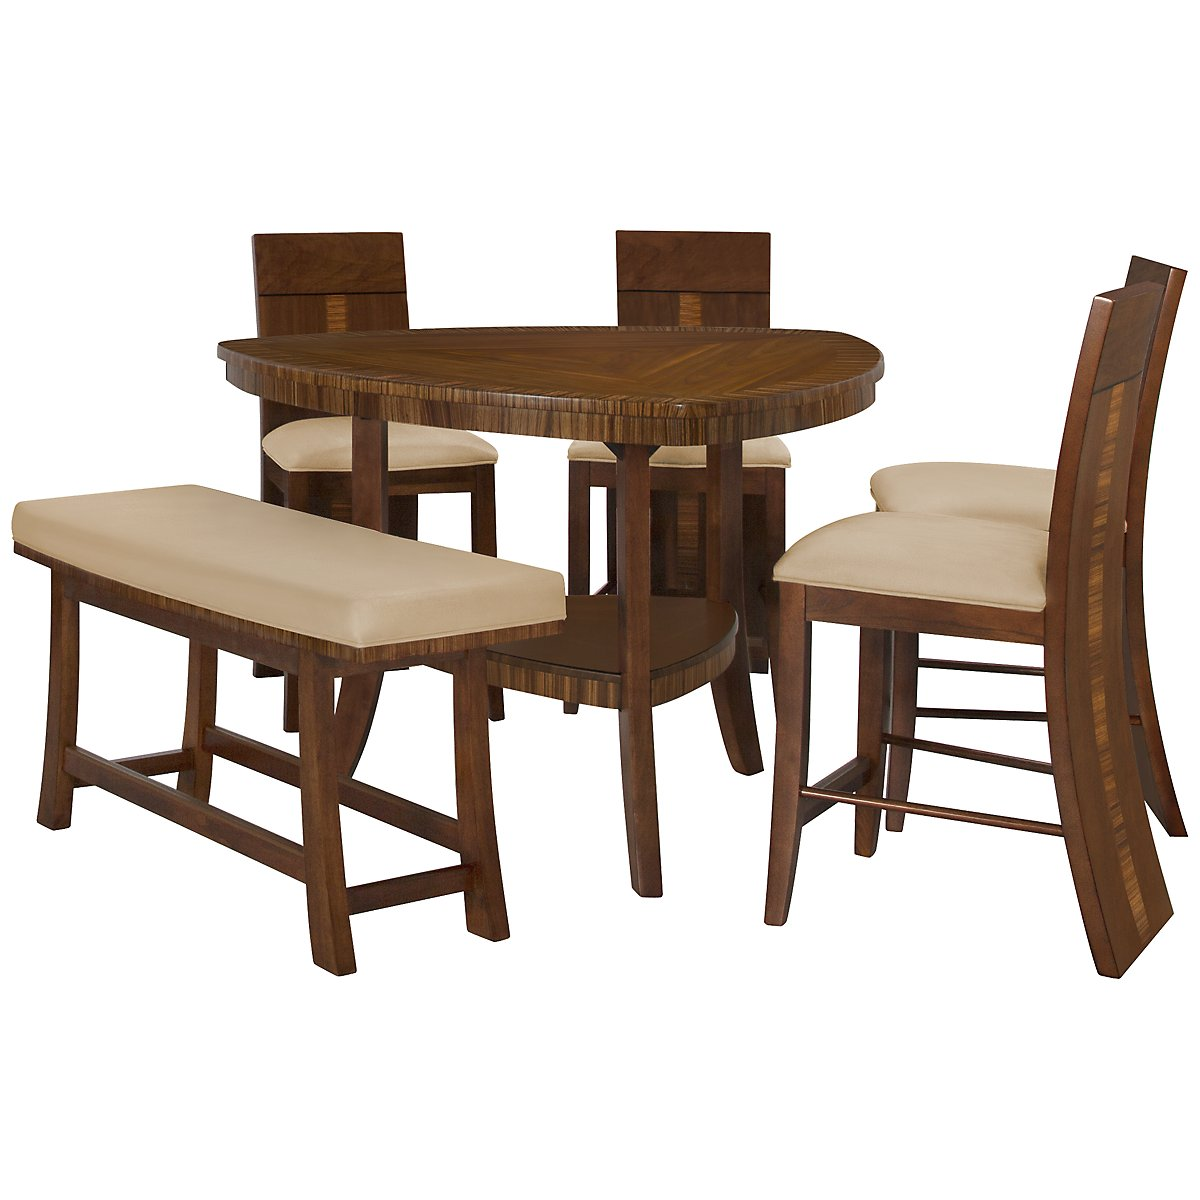 Milan Mid Tone Triangular High Table, 4 Barstools & High Bench